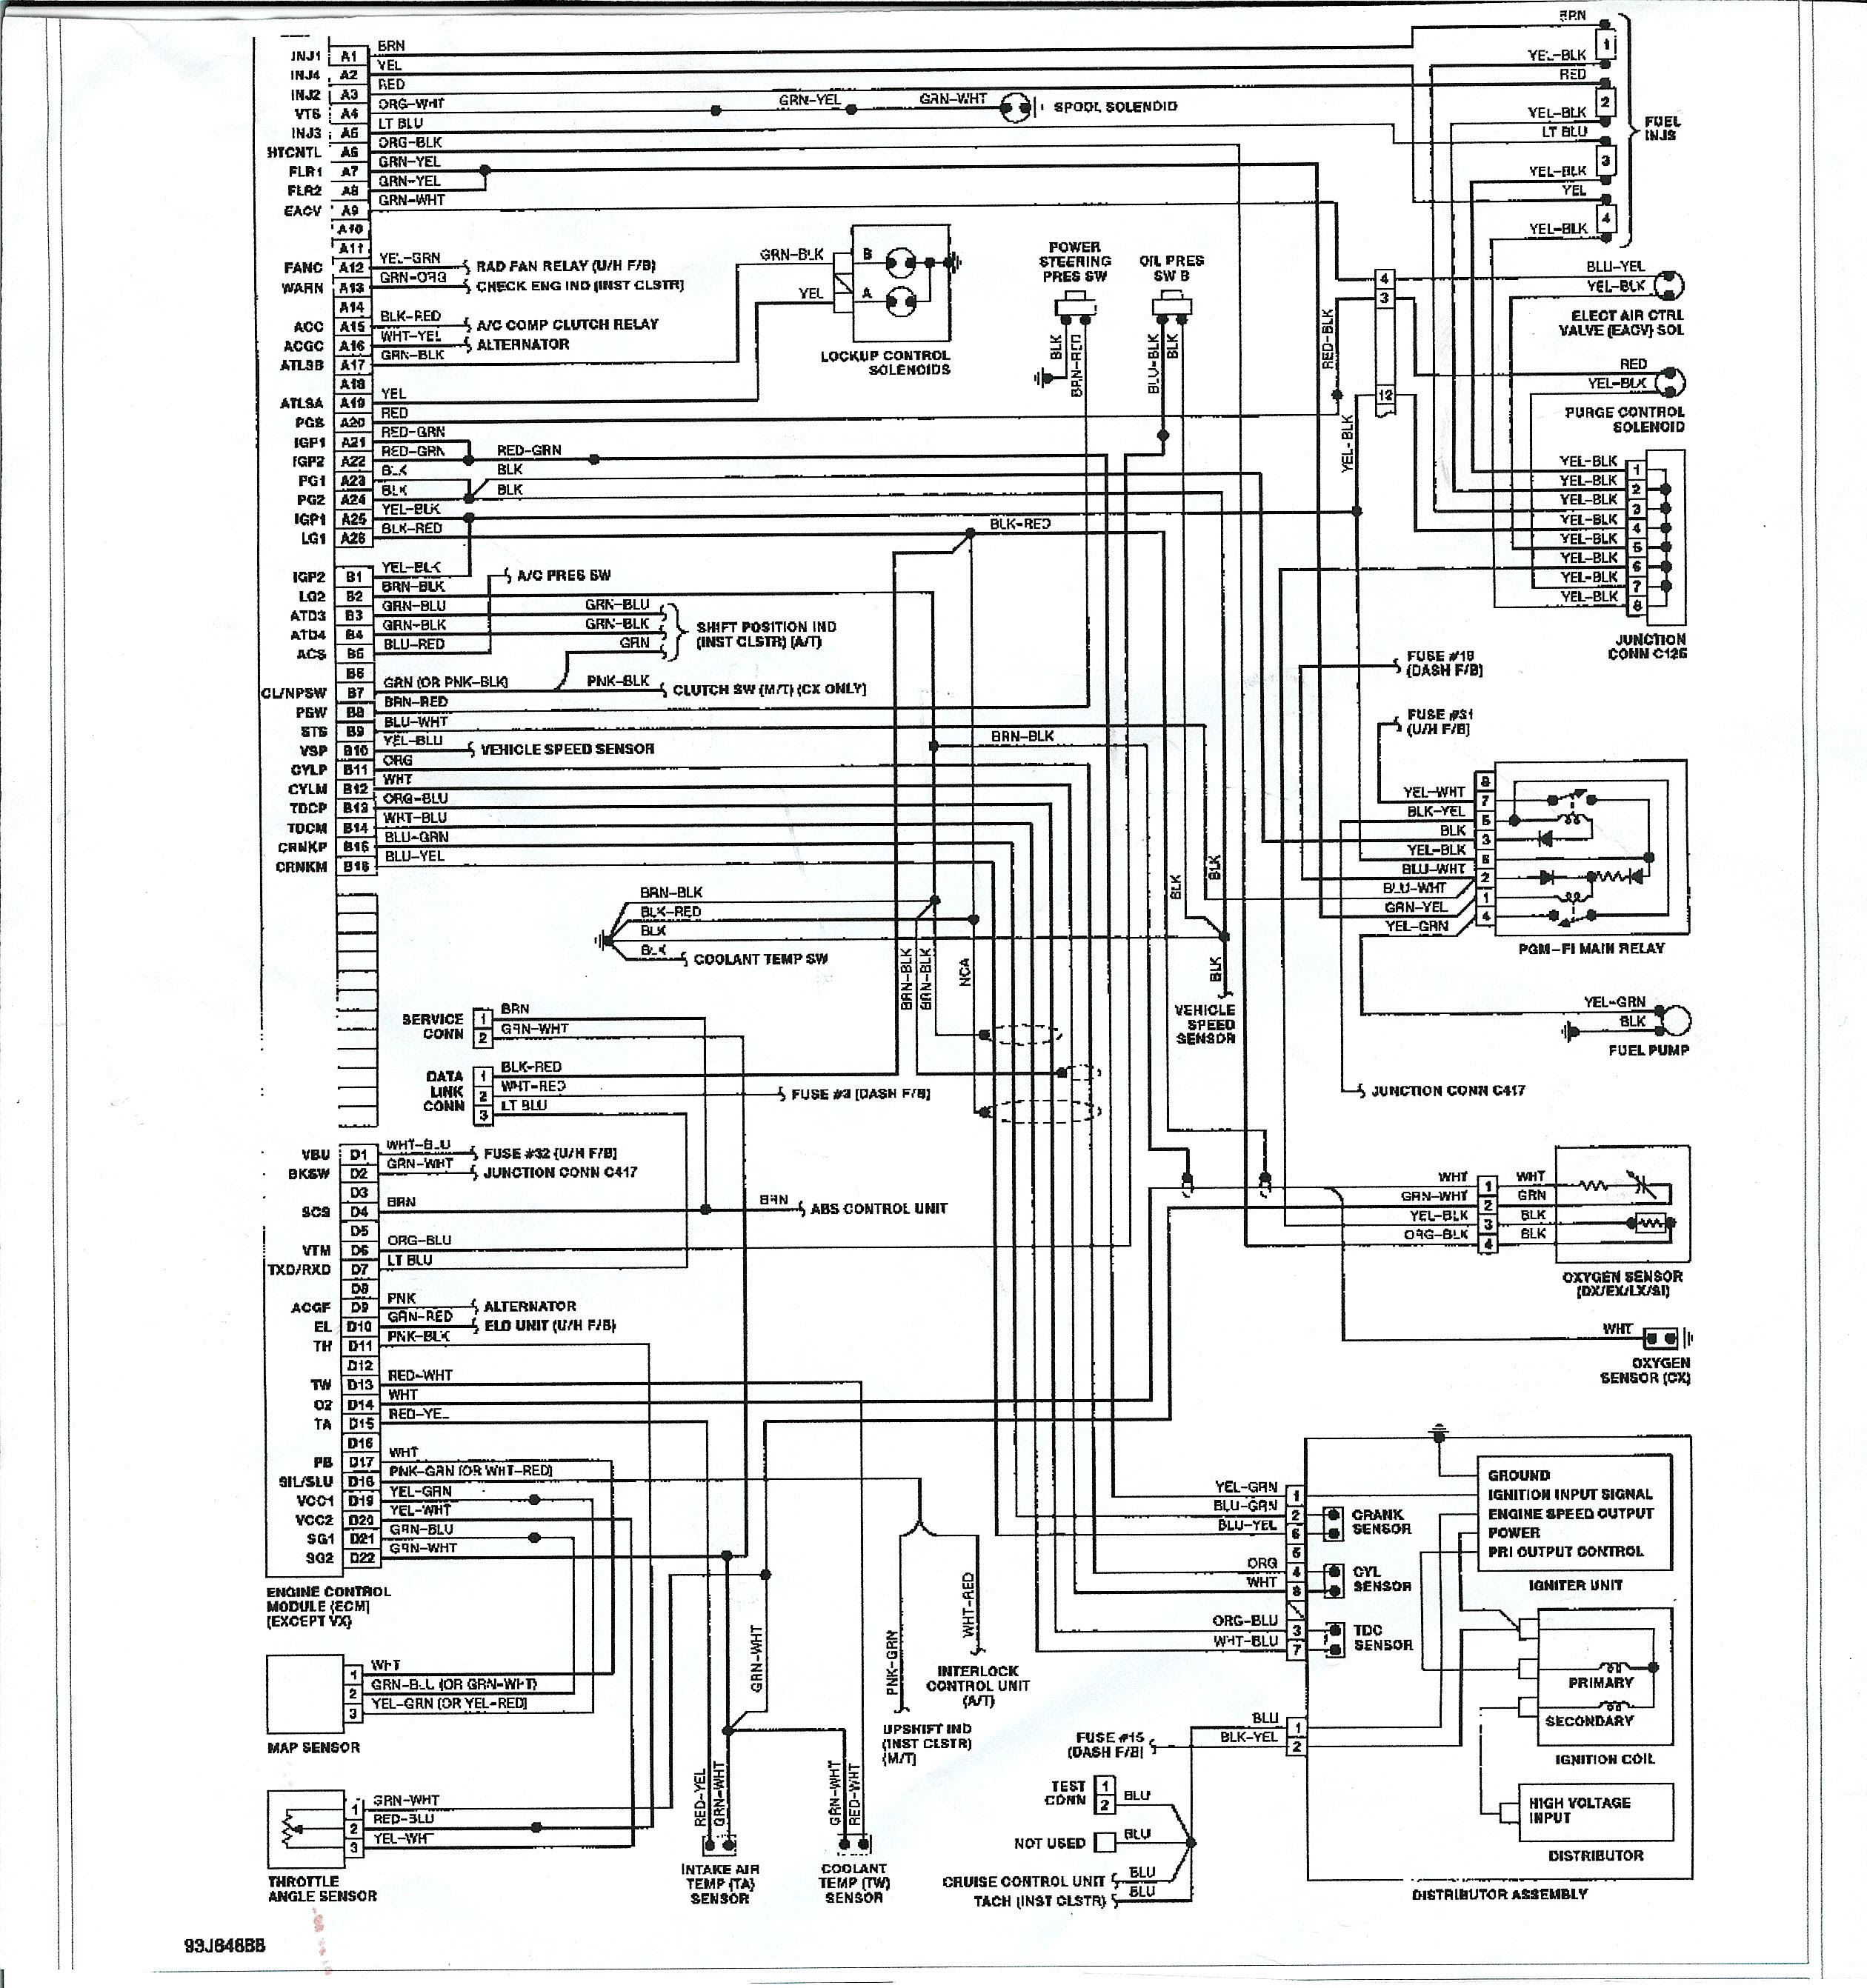 Diagram 1995 Acura Integra Gsr Stereo Wiring Diagram Full Version Hd Quality Wiring Diagram Diagramdeaner Jodenjoy It